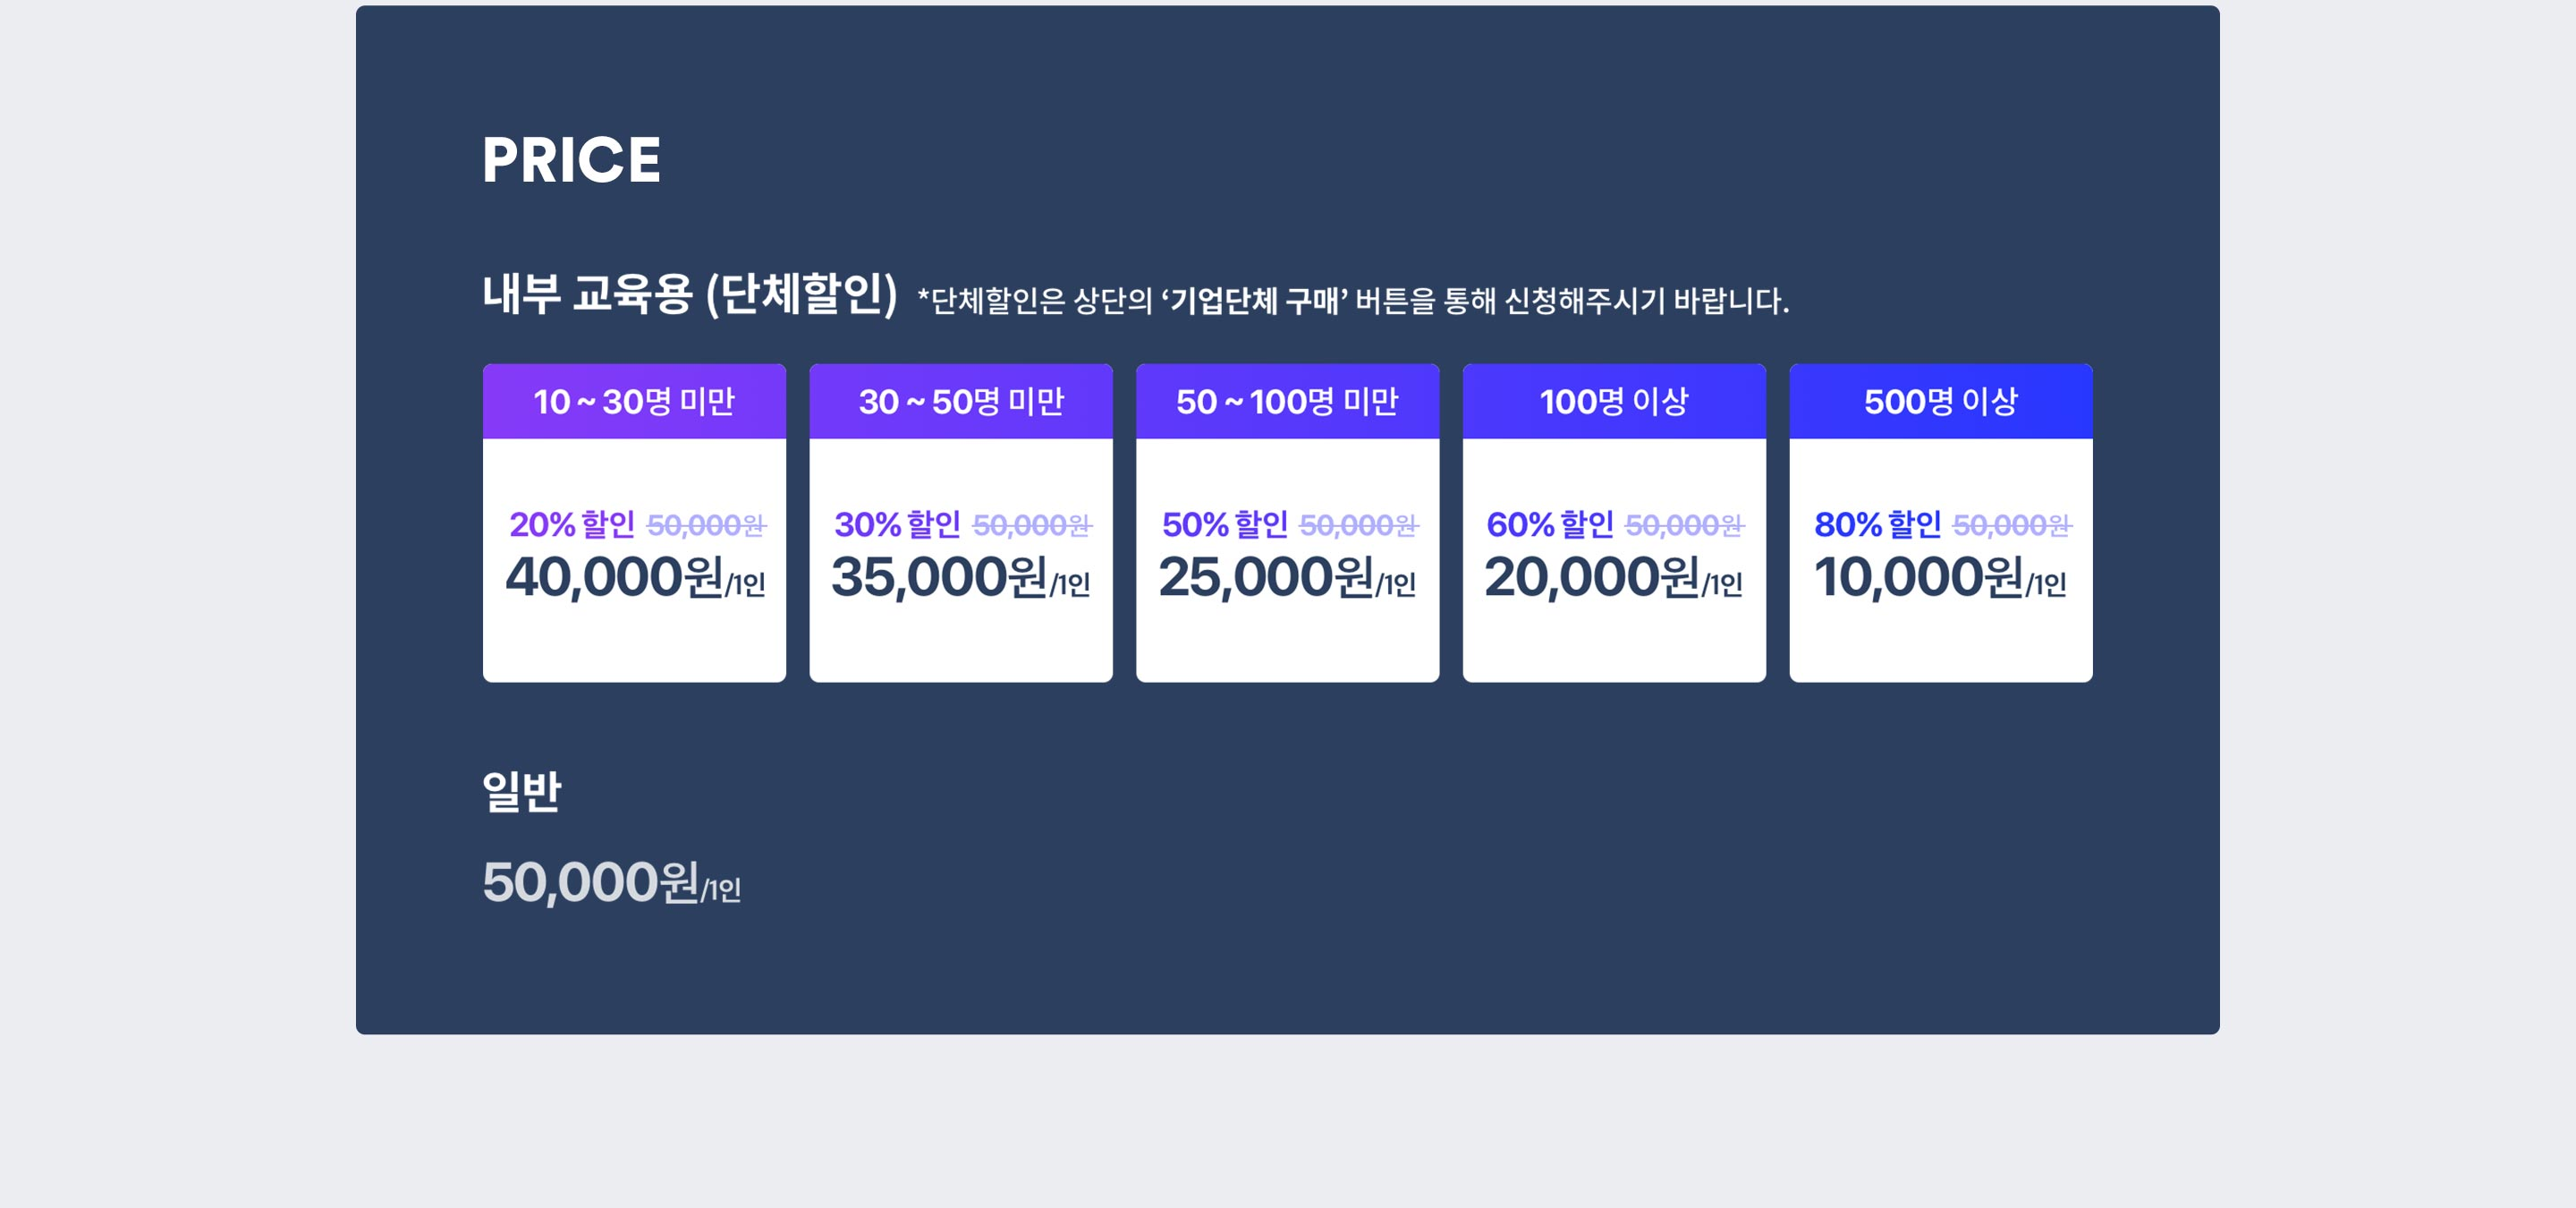 https://static.wanted.co.kr/images/events/948/e28cbbe2.jpg